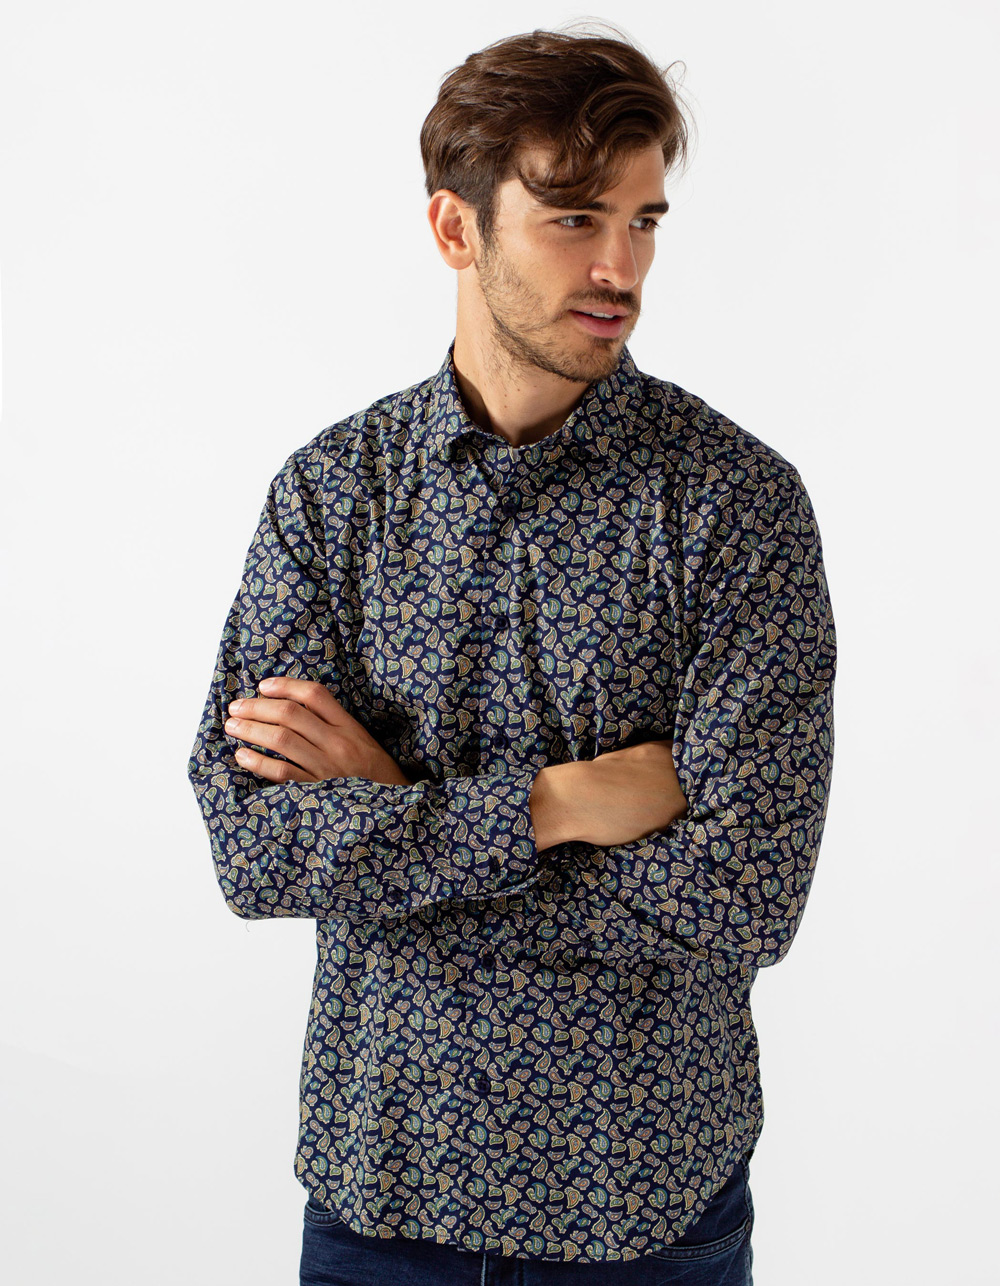 Printed shirt with cashmere pattern